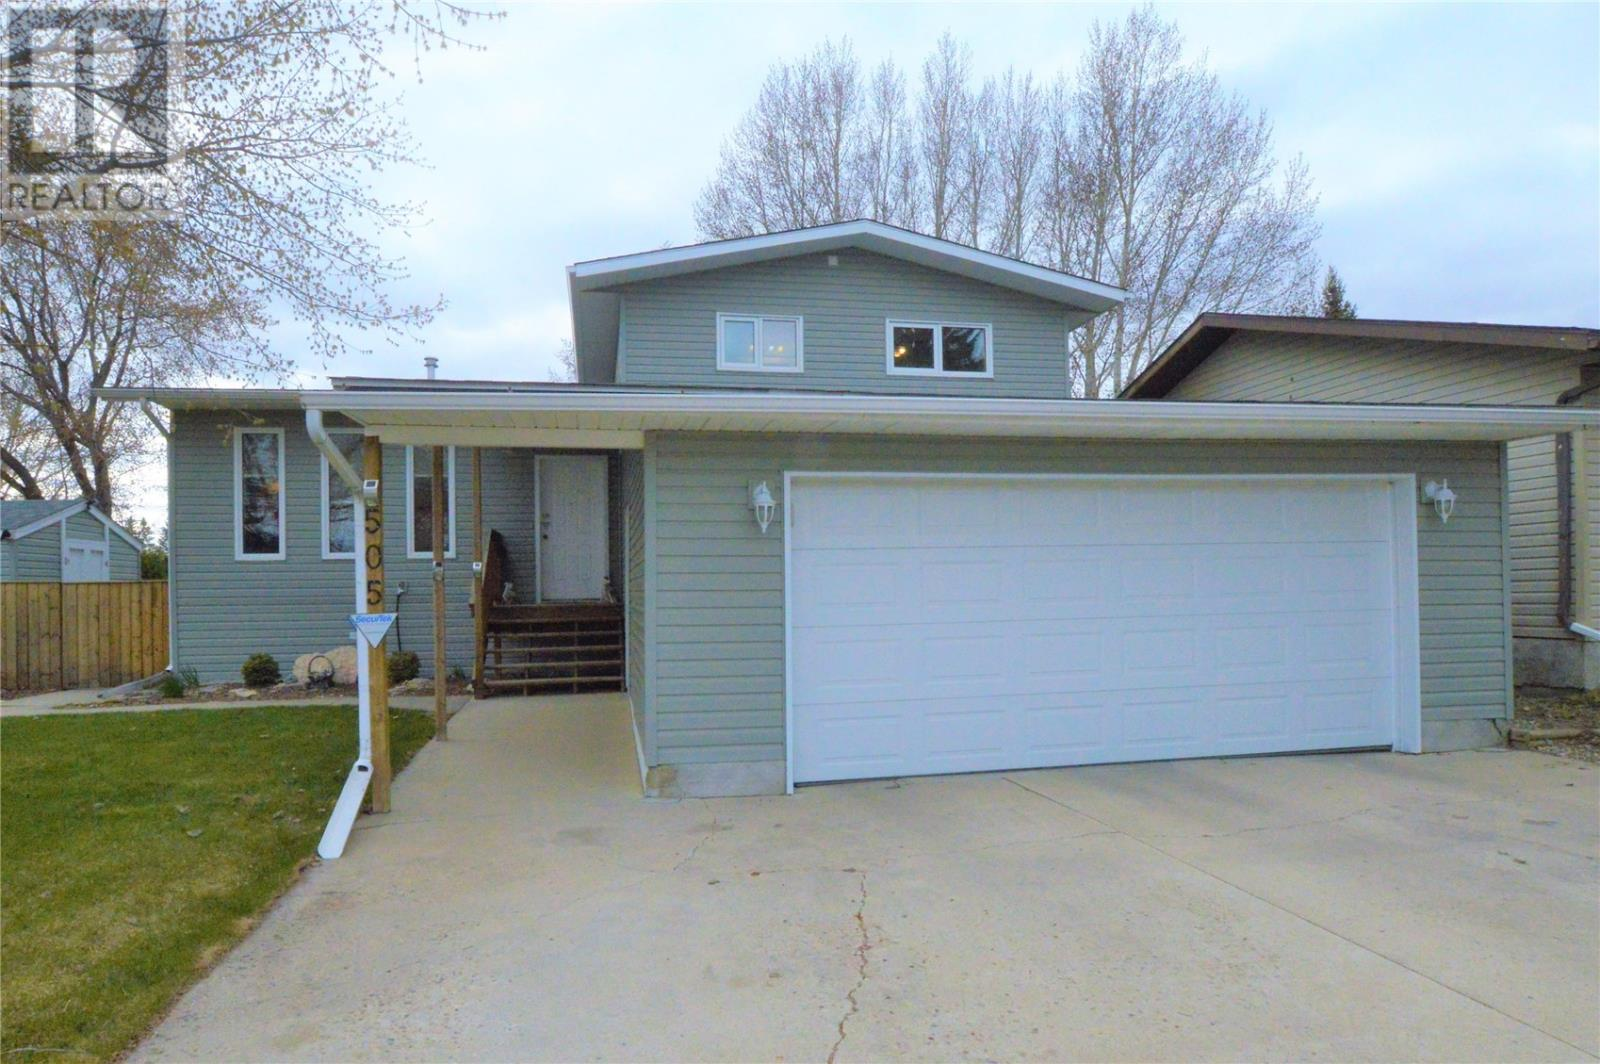 Removed: 505 Wilken Crescent West, Warman,  - Removed on 2019-05-24 23:09:36